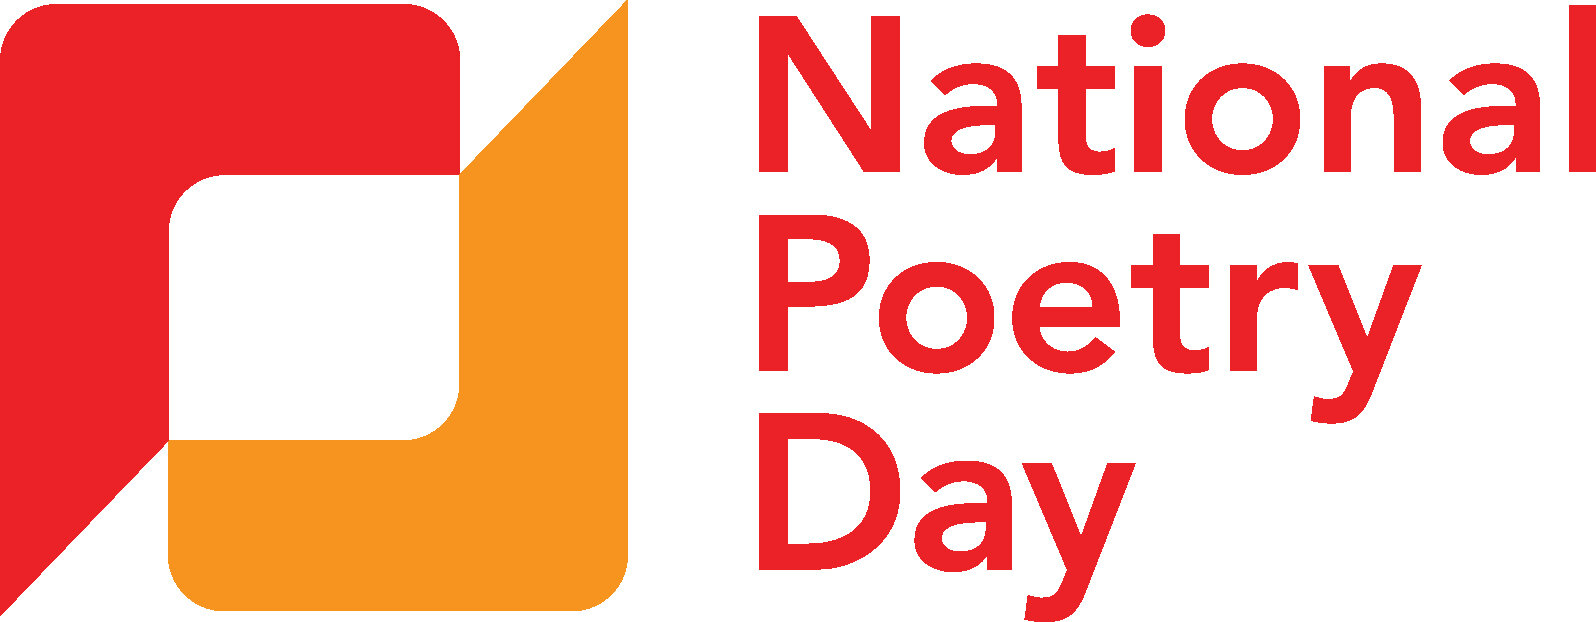 National Poetry Day.jpg